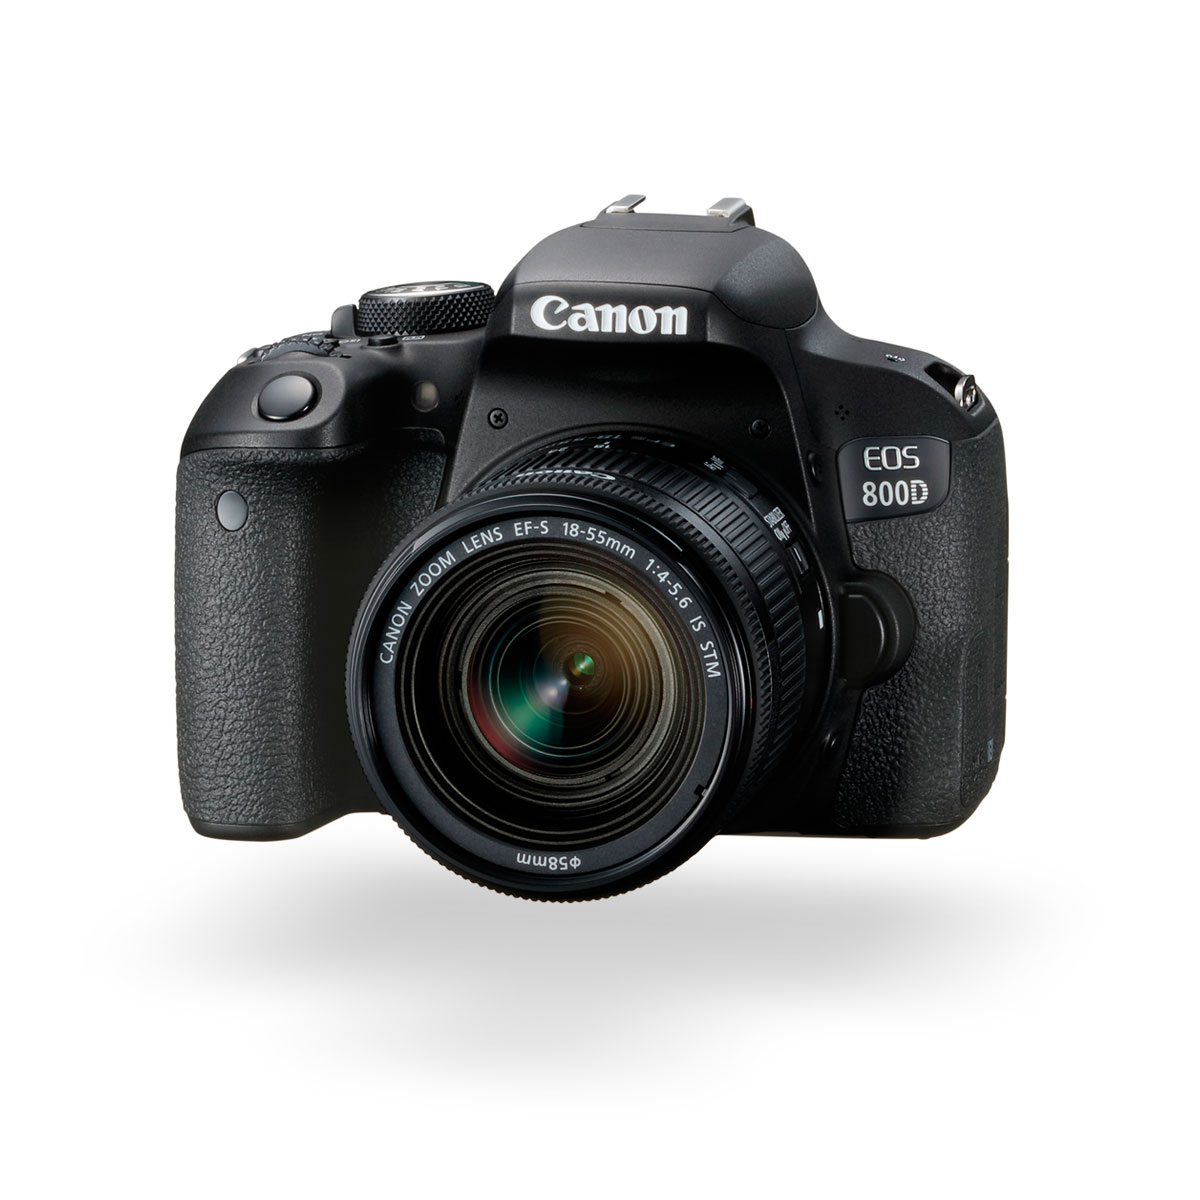 EOS 800D The Perfect DSLR For Beginners